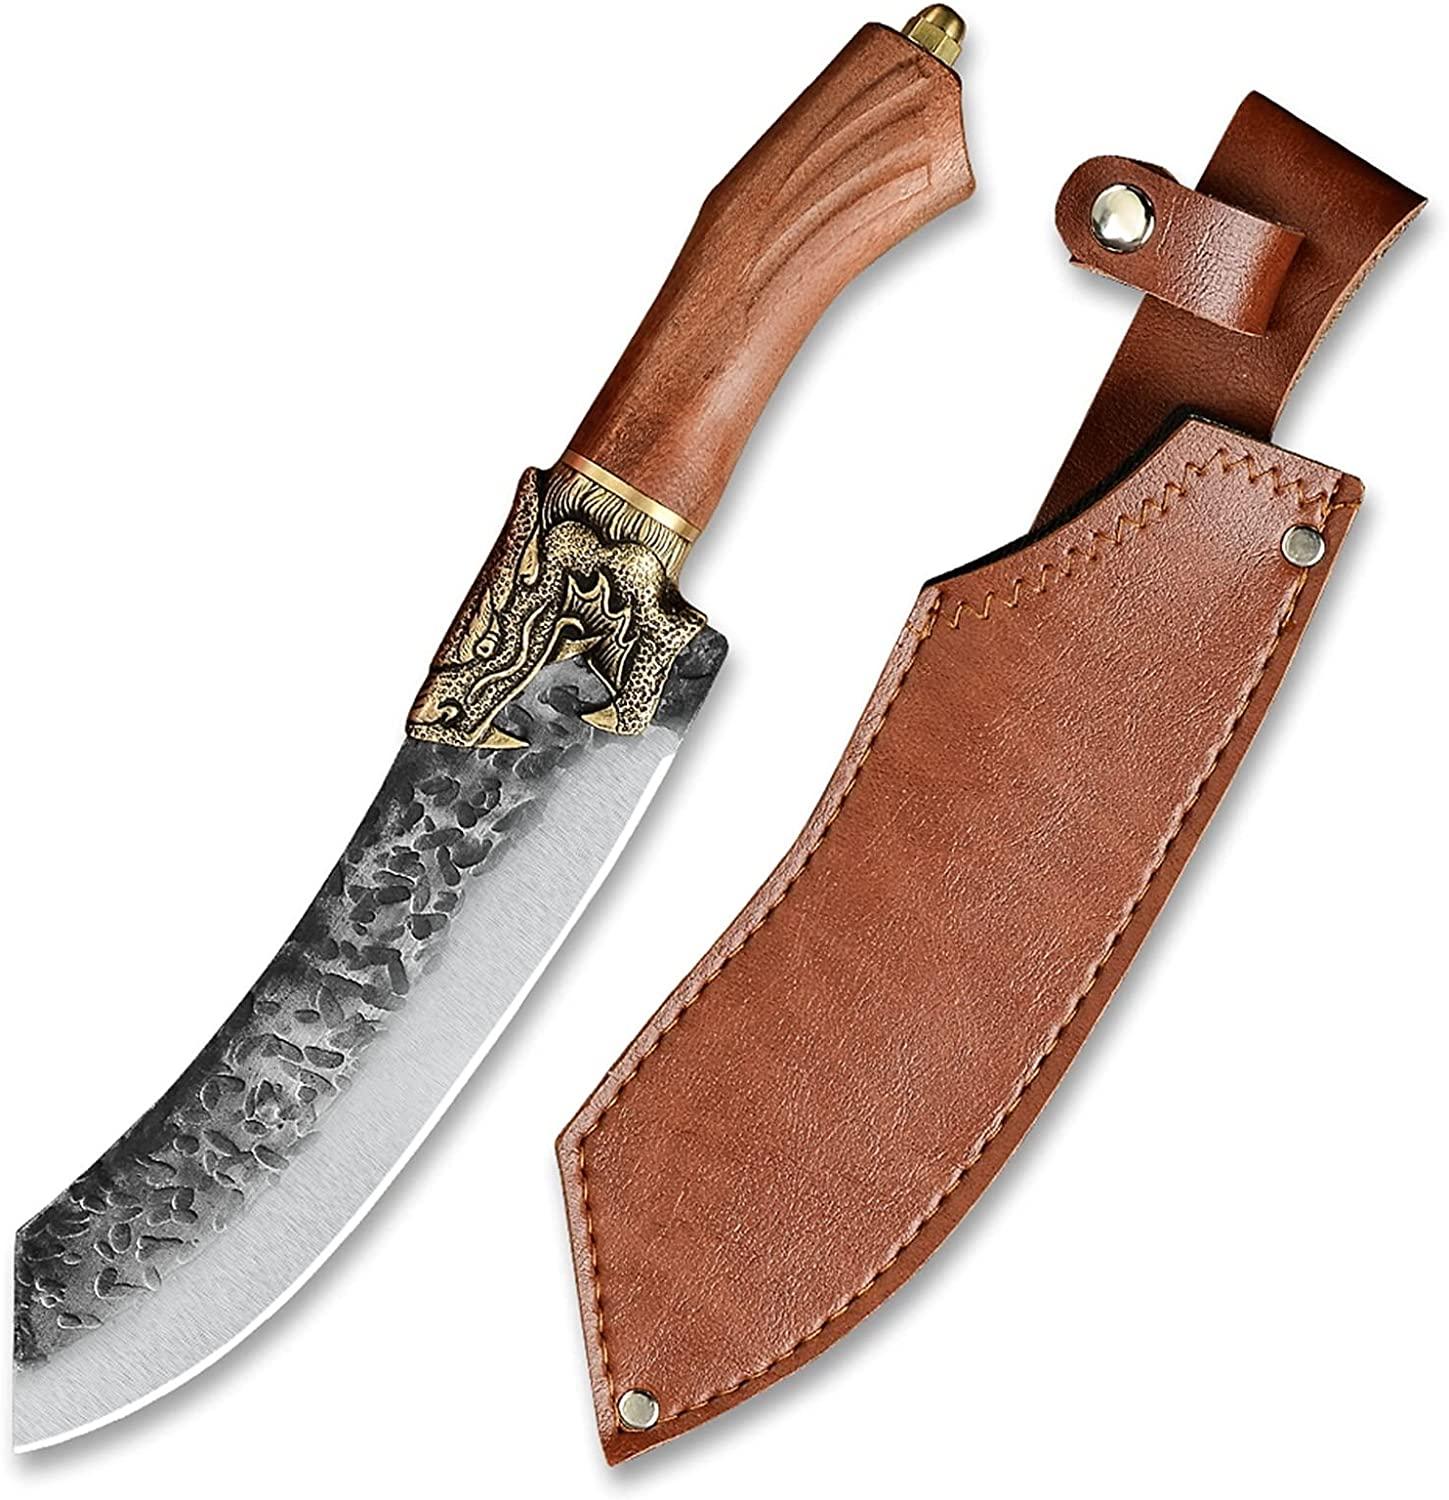 Serbian Kitchen Knife Forged Handmade Steel Hammered In a popularity Blade Topics on TV 7cr17